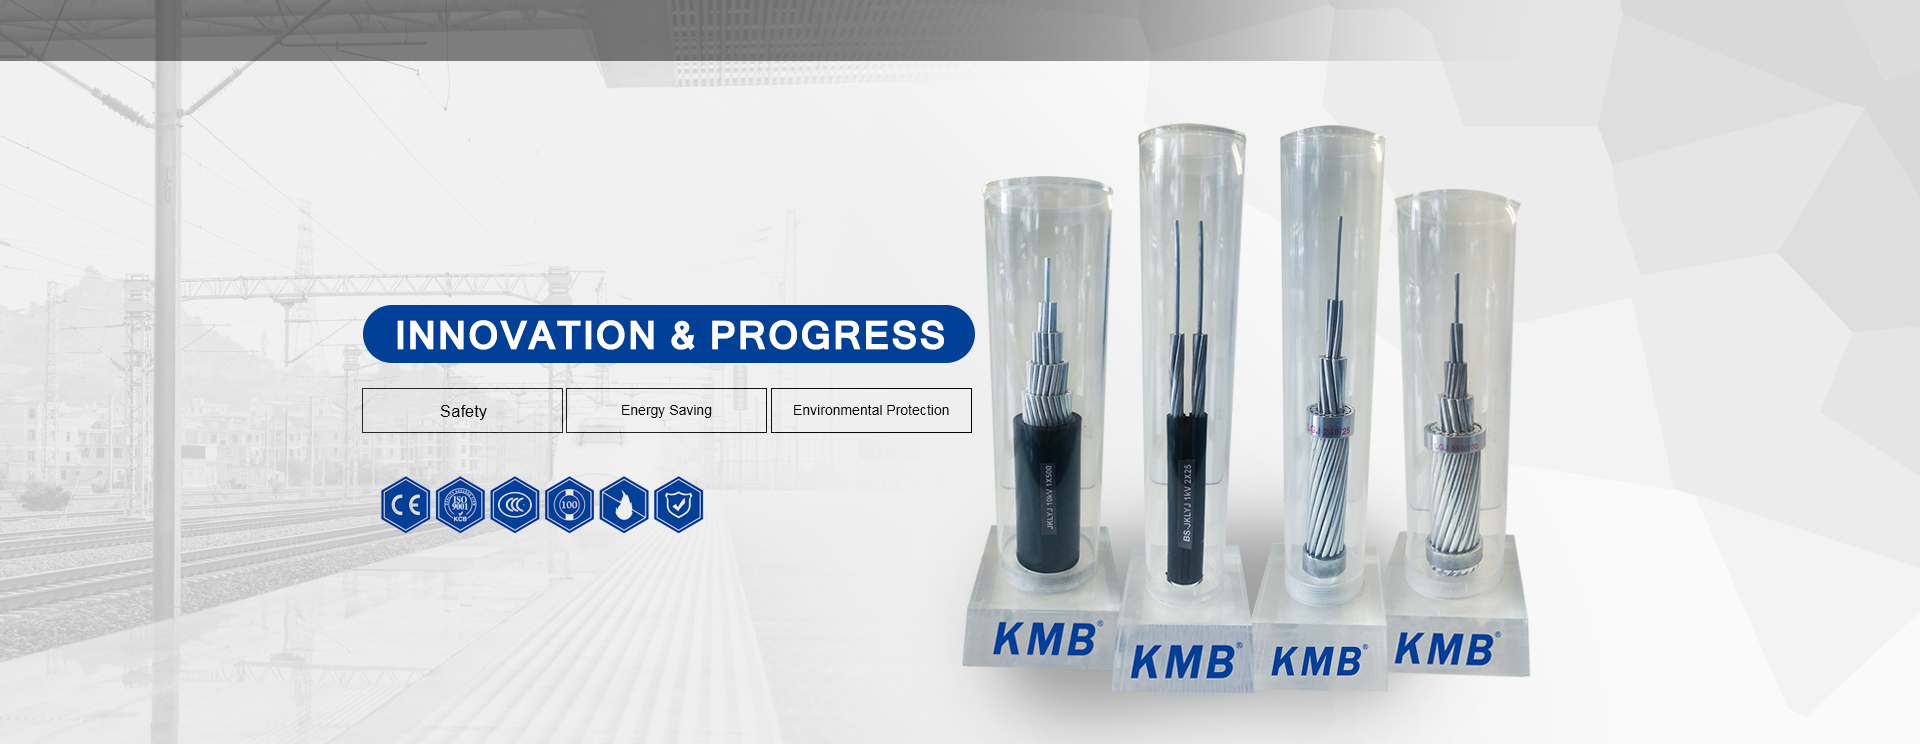 KMB-Wire and Cable-Jiangxi Tuocheng Wire & Cable Manufacturing Co.,Ltd.